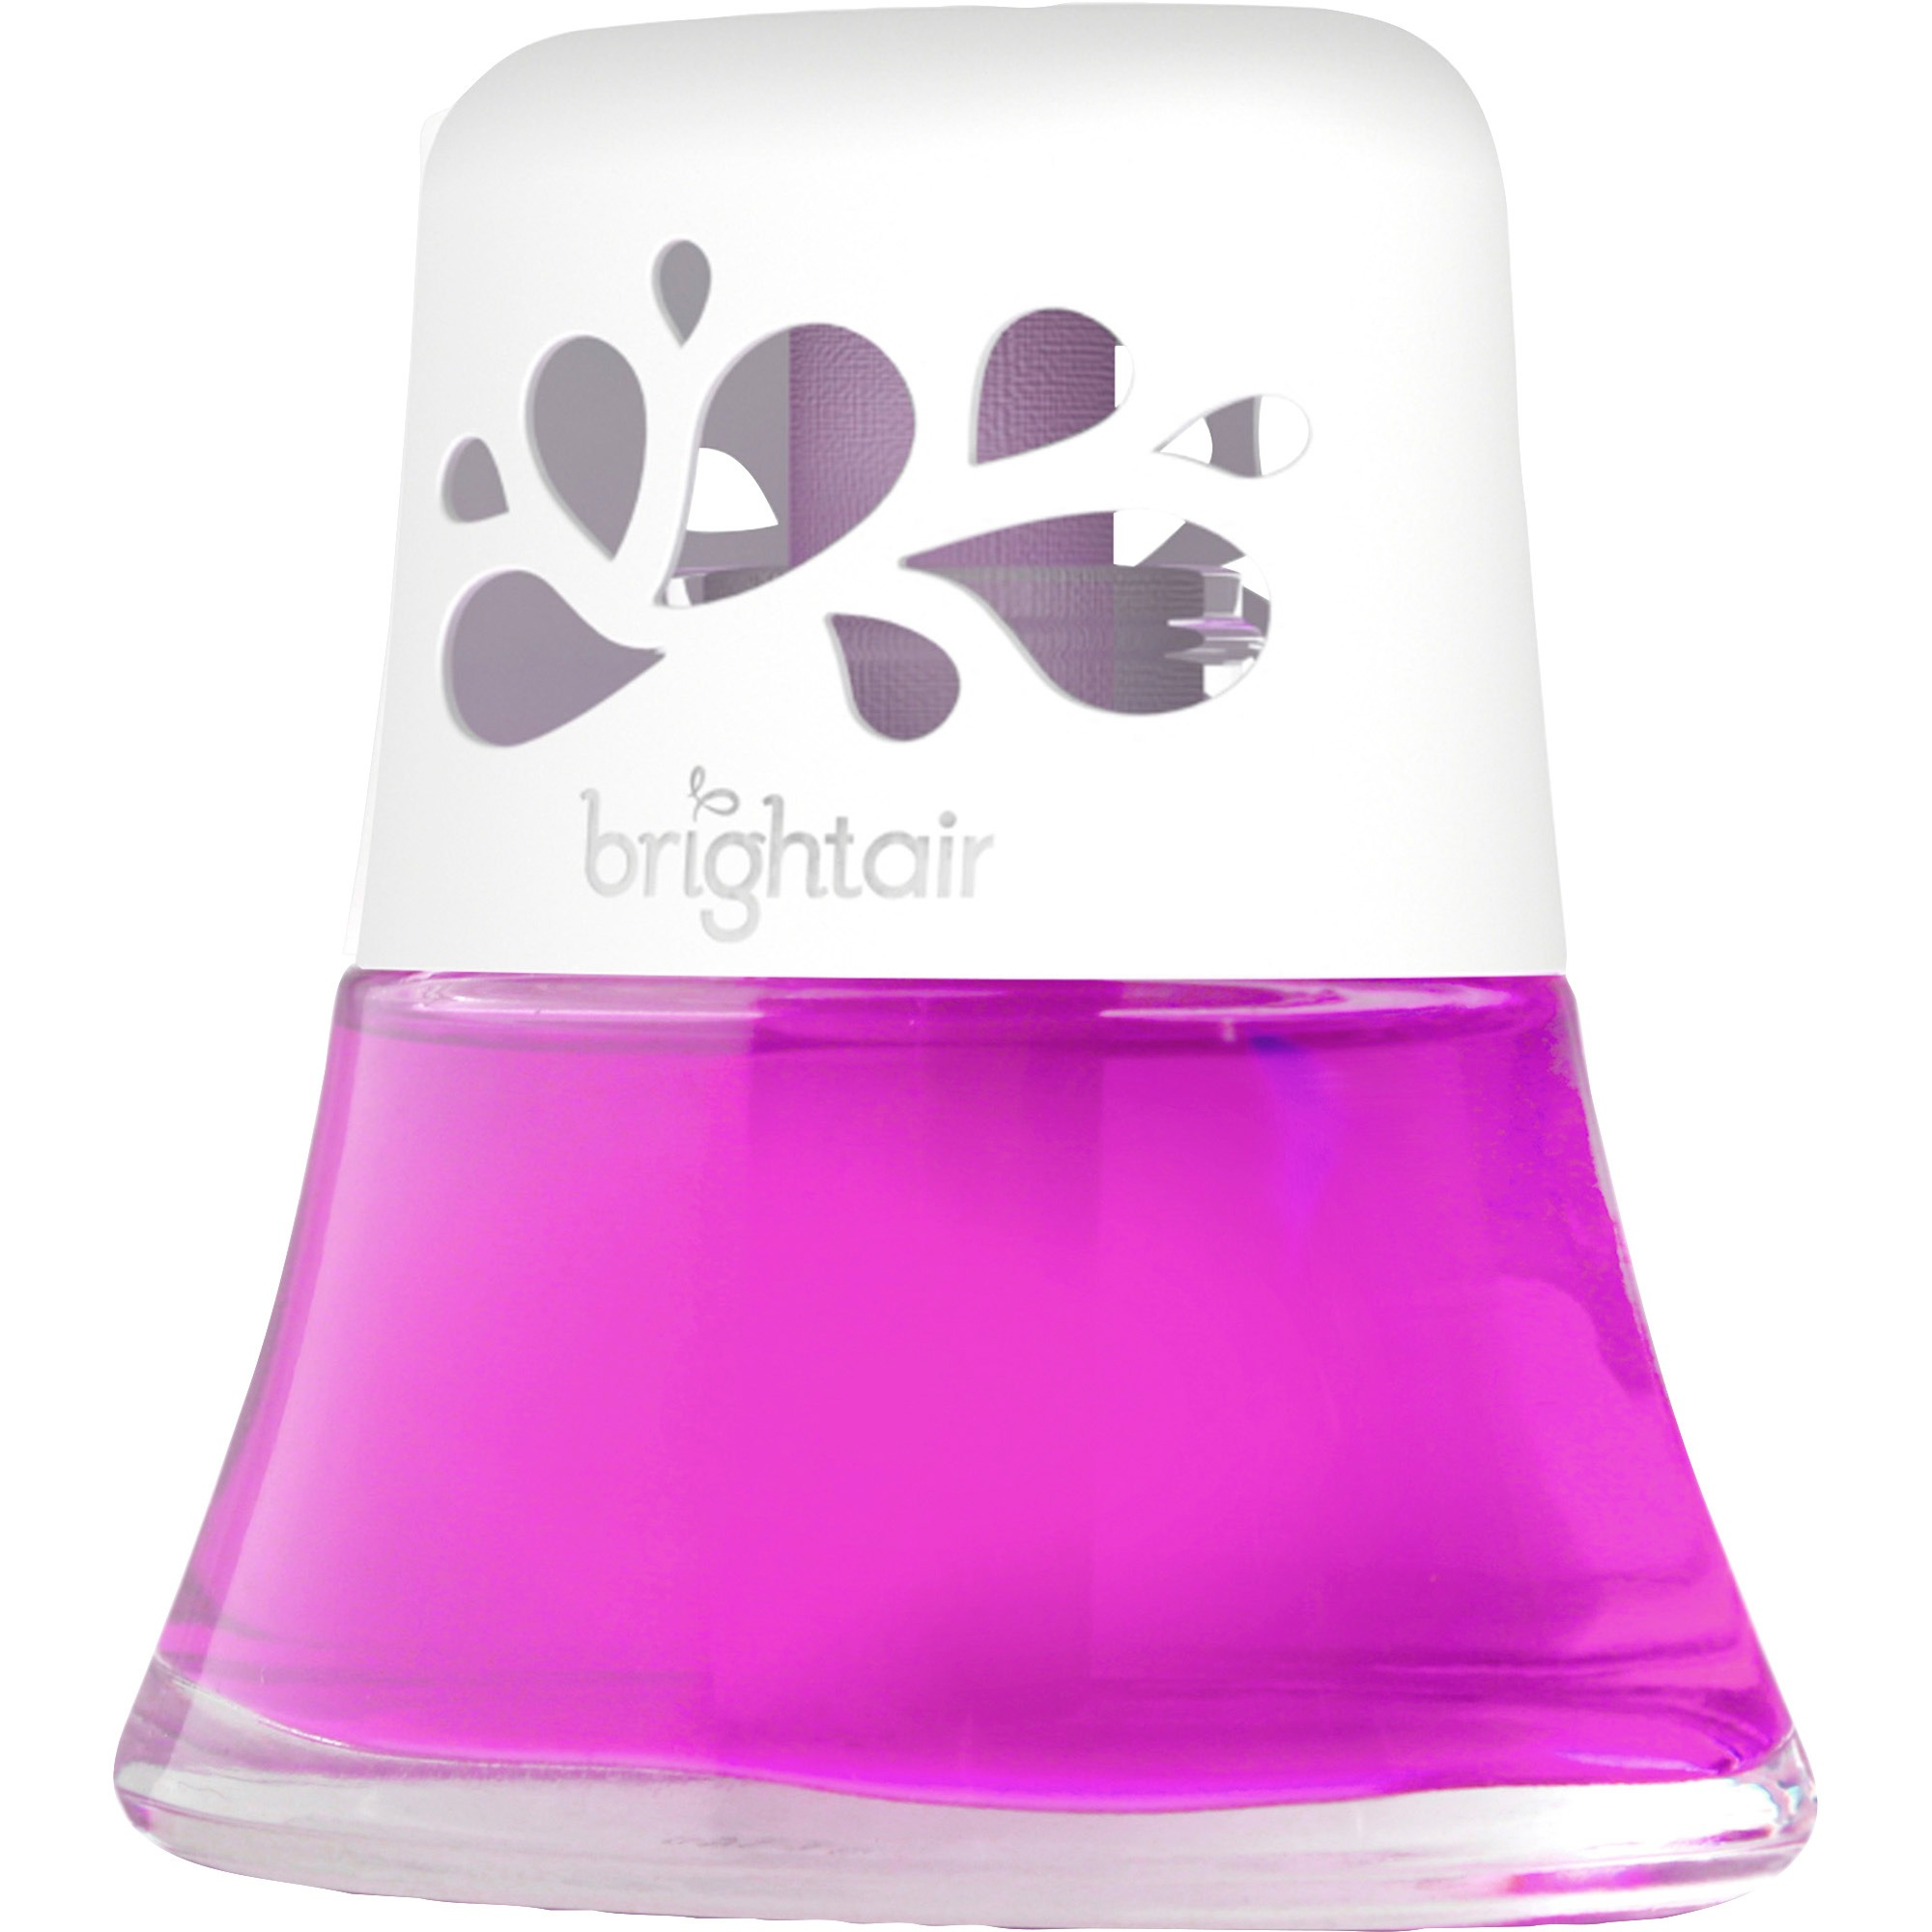 Bright Air Fresh Petals & Peach Scented Oil Air Freshener, 2.5 fl oz